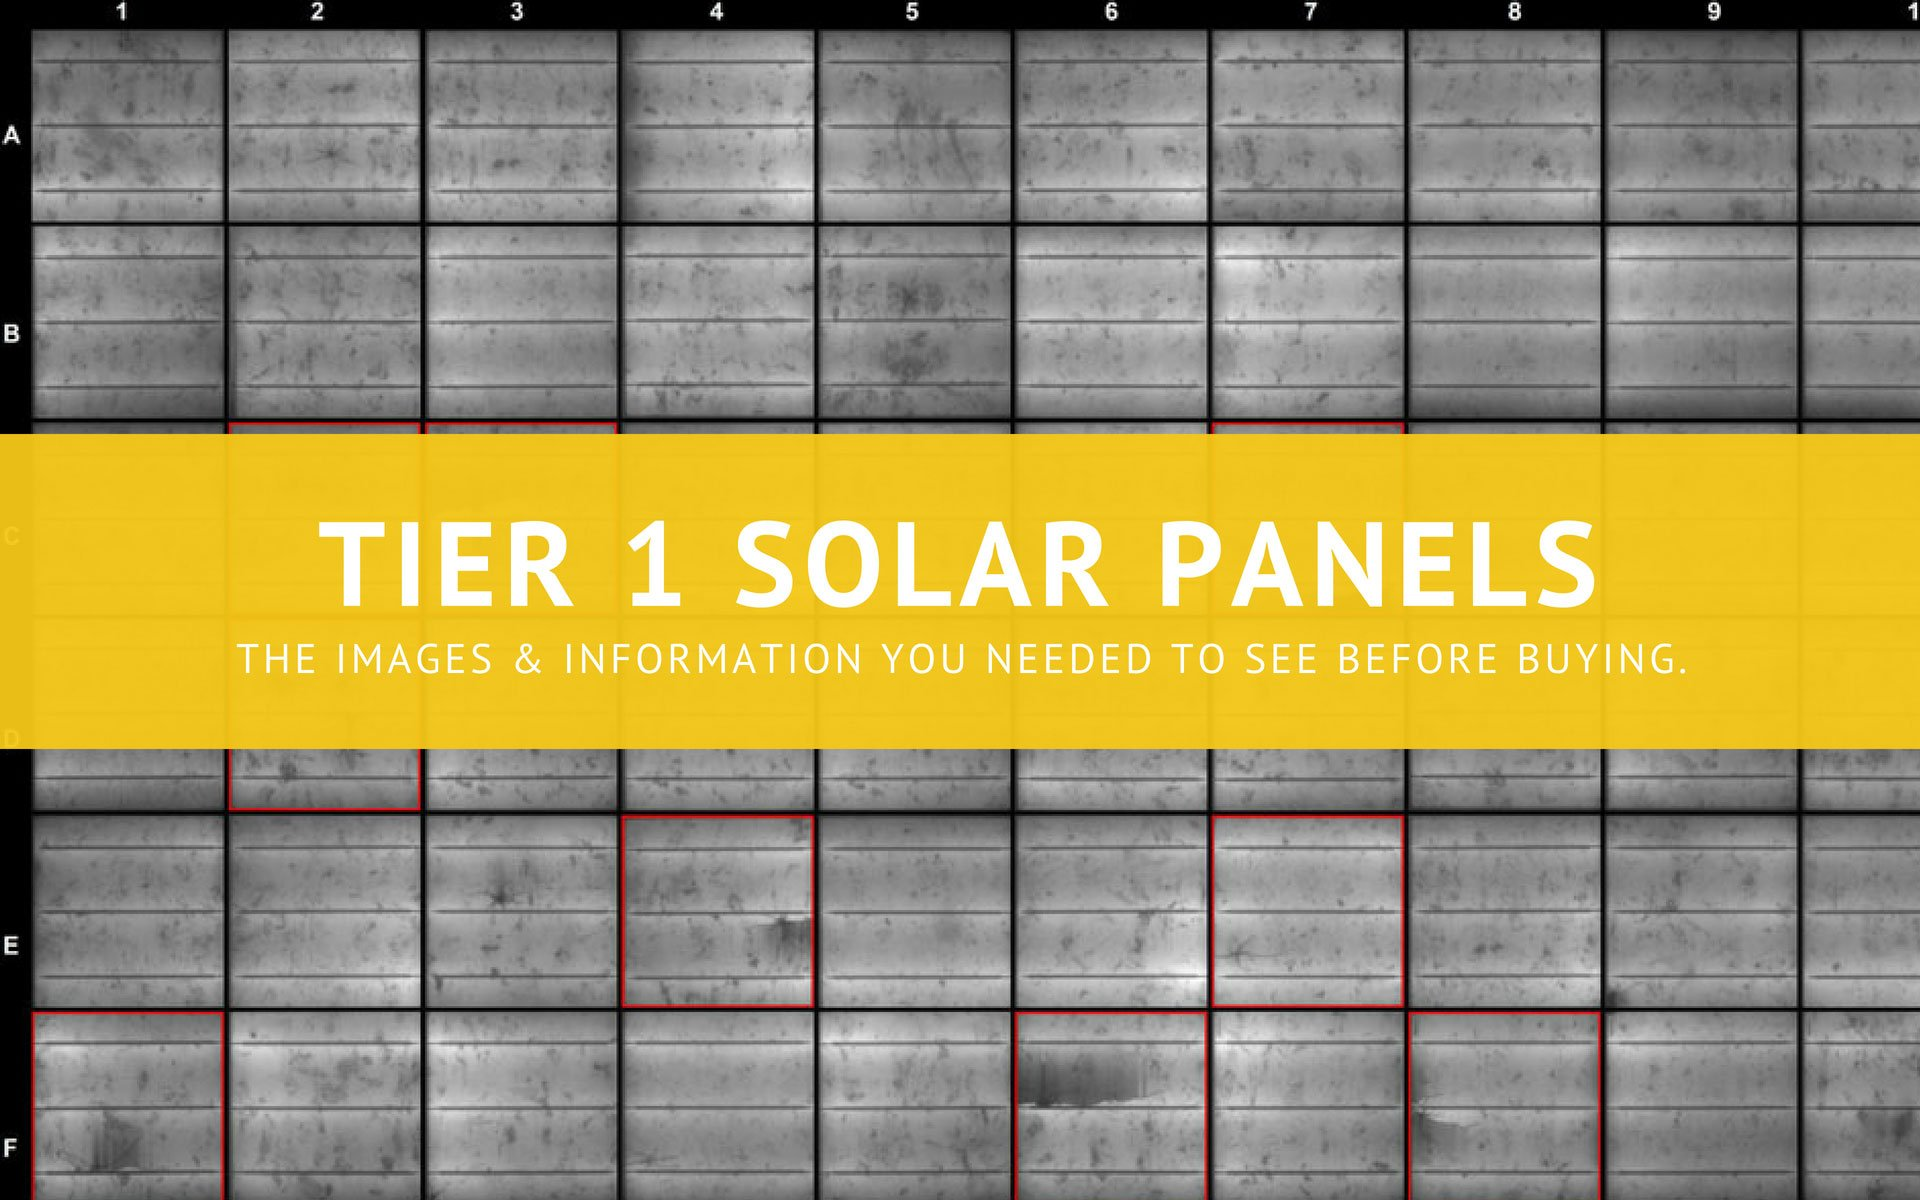 TIER 1 SOLAR PANELS by Perth Solar Warehouse